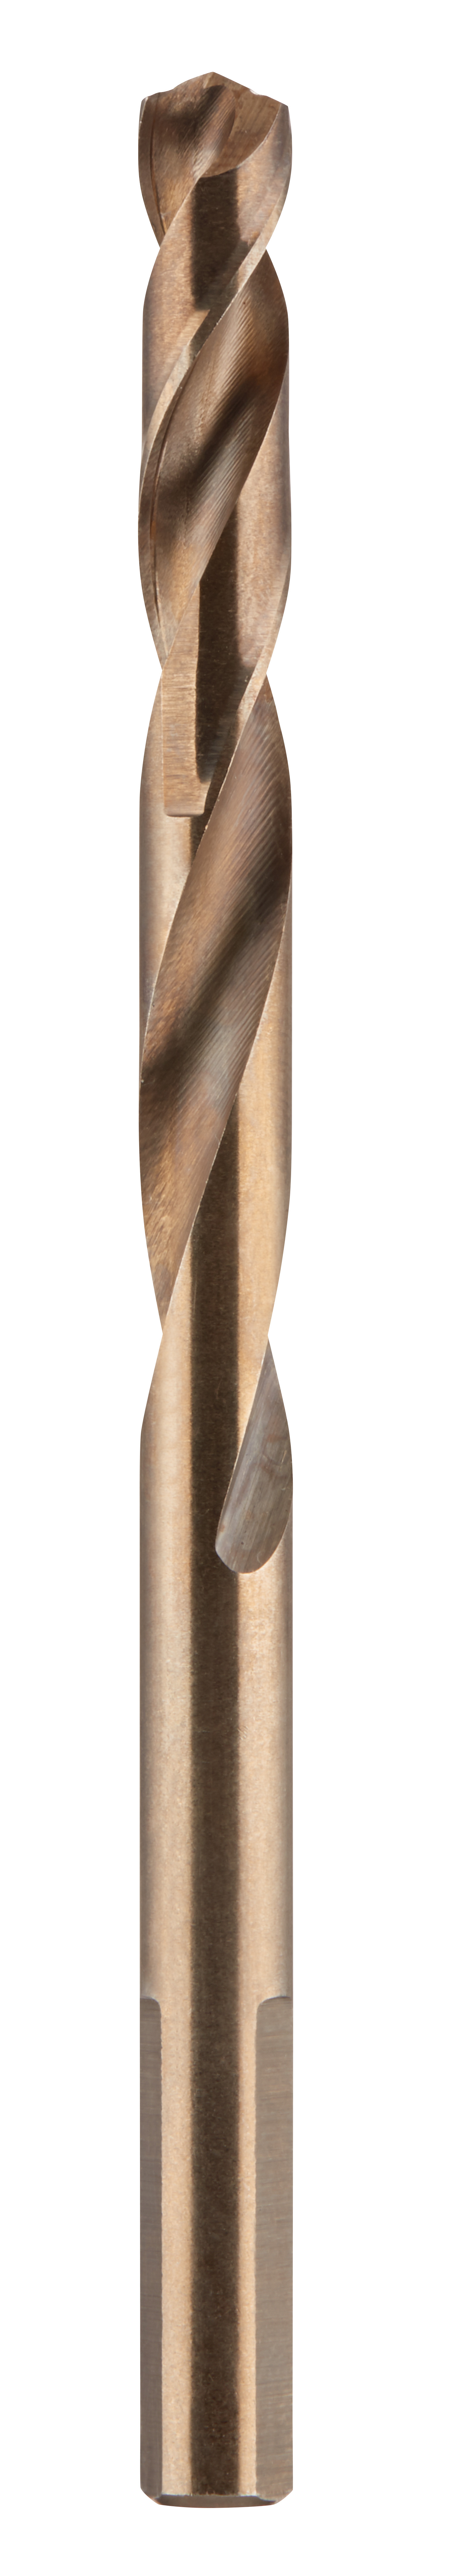 Milwaukee® RED HELIX™ 48-89-2515 Drill Bit, 6.5 mm Drill - Metric, 0.2559 in Drill - Decimal Inch, 135 deg Point, Cobalt, Black Oxide